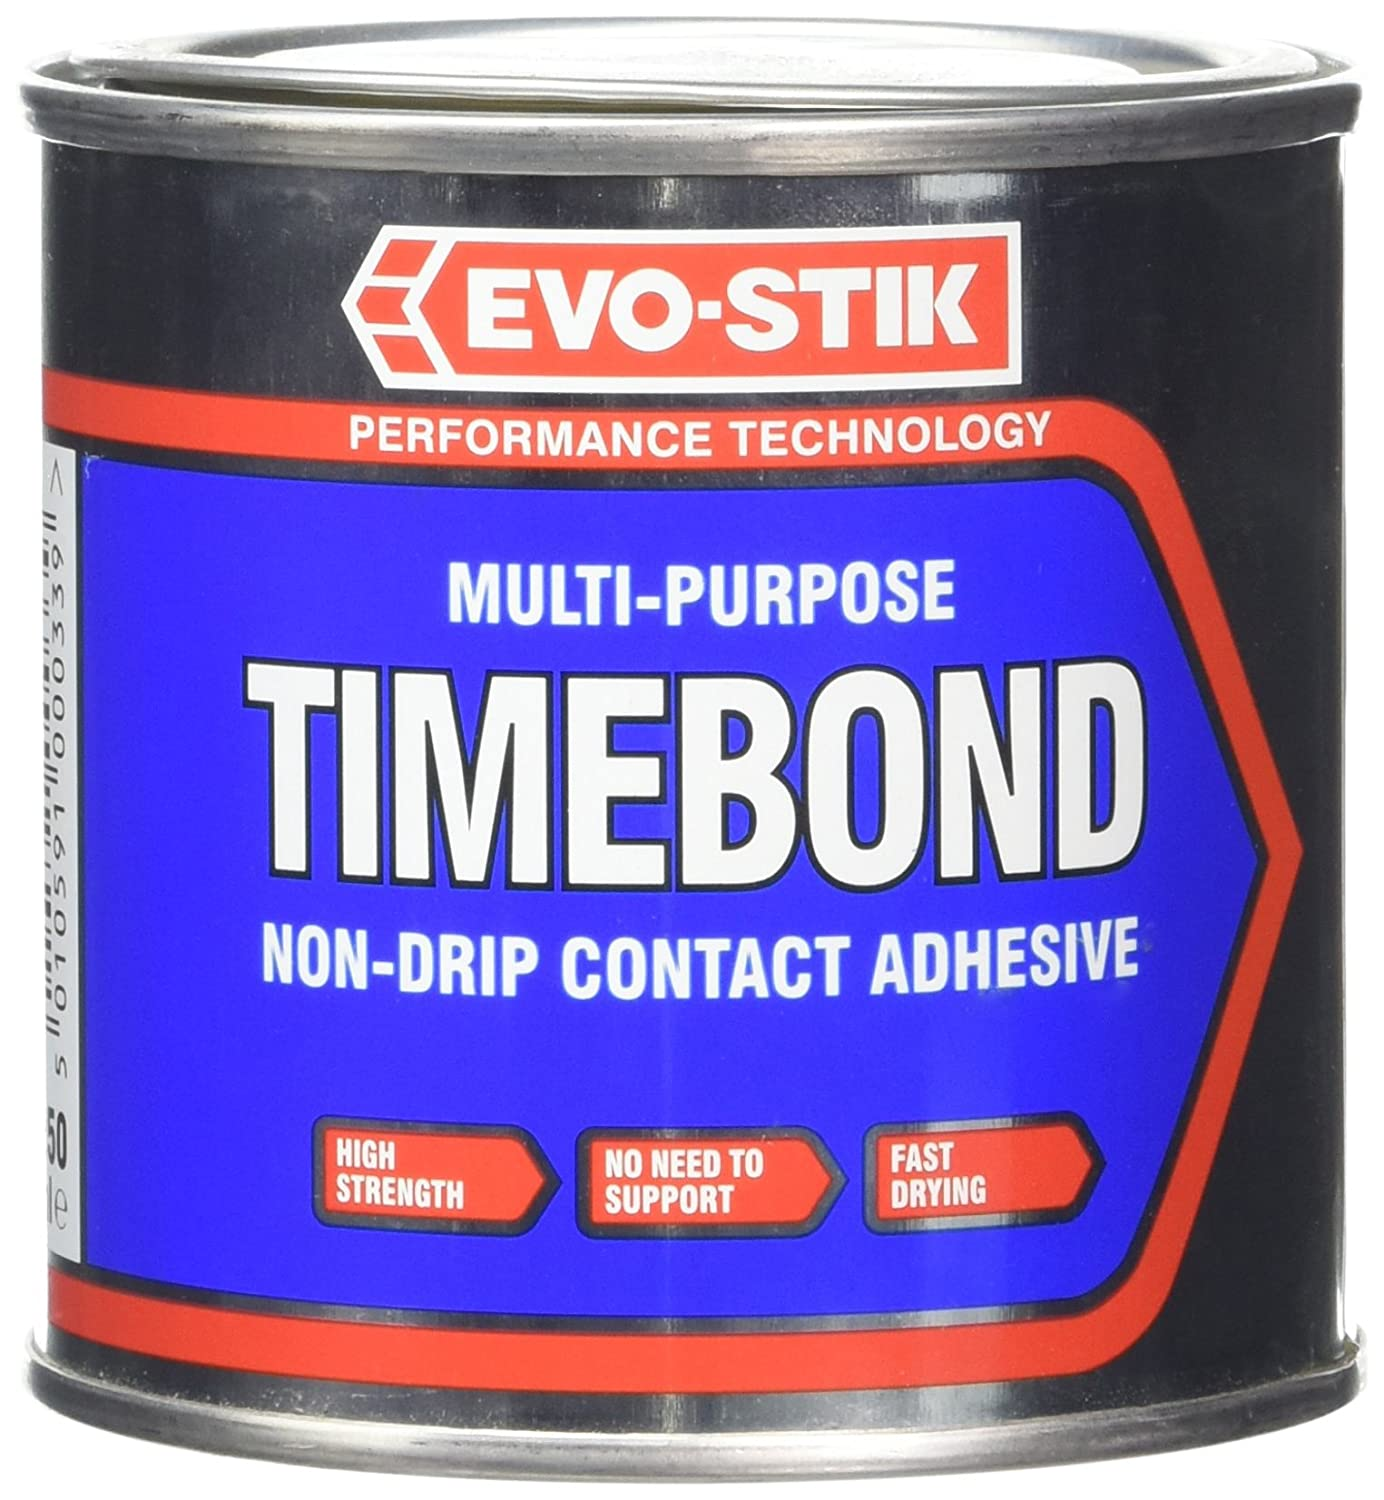 Evo Stik Time Bond Non-Drip Contact Adhesive - 250ml 627901 30812934 B0001P03VK Adhesives Adhesives and Fillers Fixings and Hardware Items Time Bond Adhesive